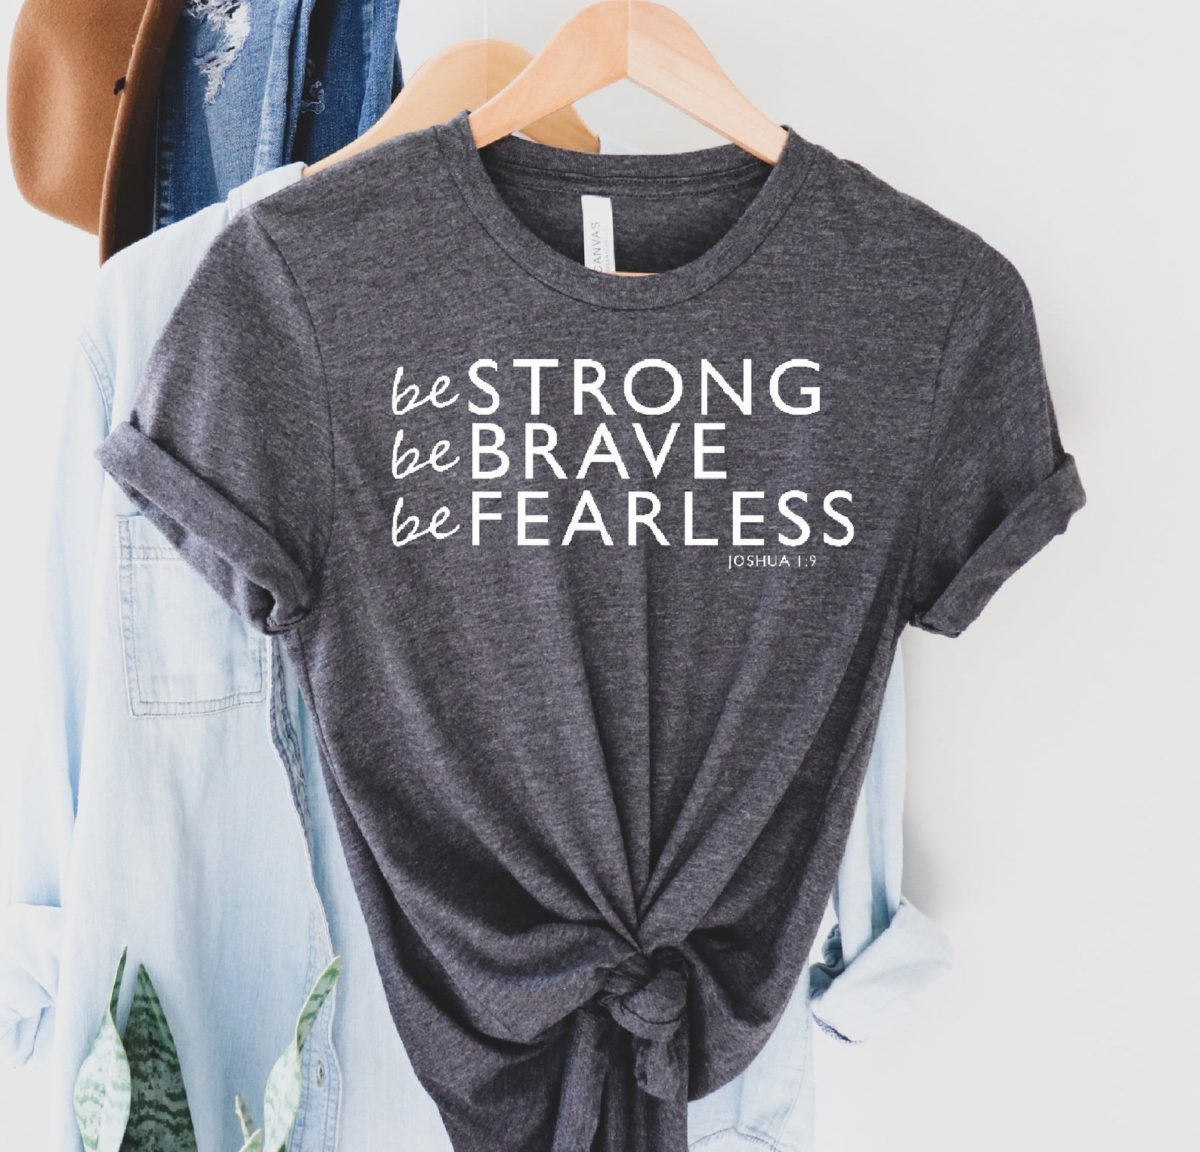 26 awesome etsy t-shirts that send a positive message and make great gifts | parenting questions | mamas uncut il 1588xn.2949329354 h2e6